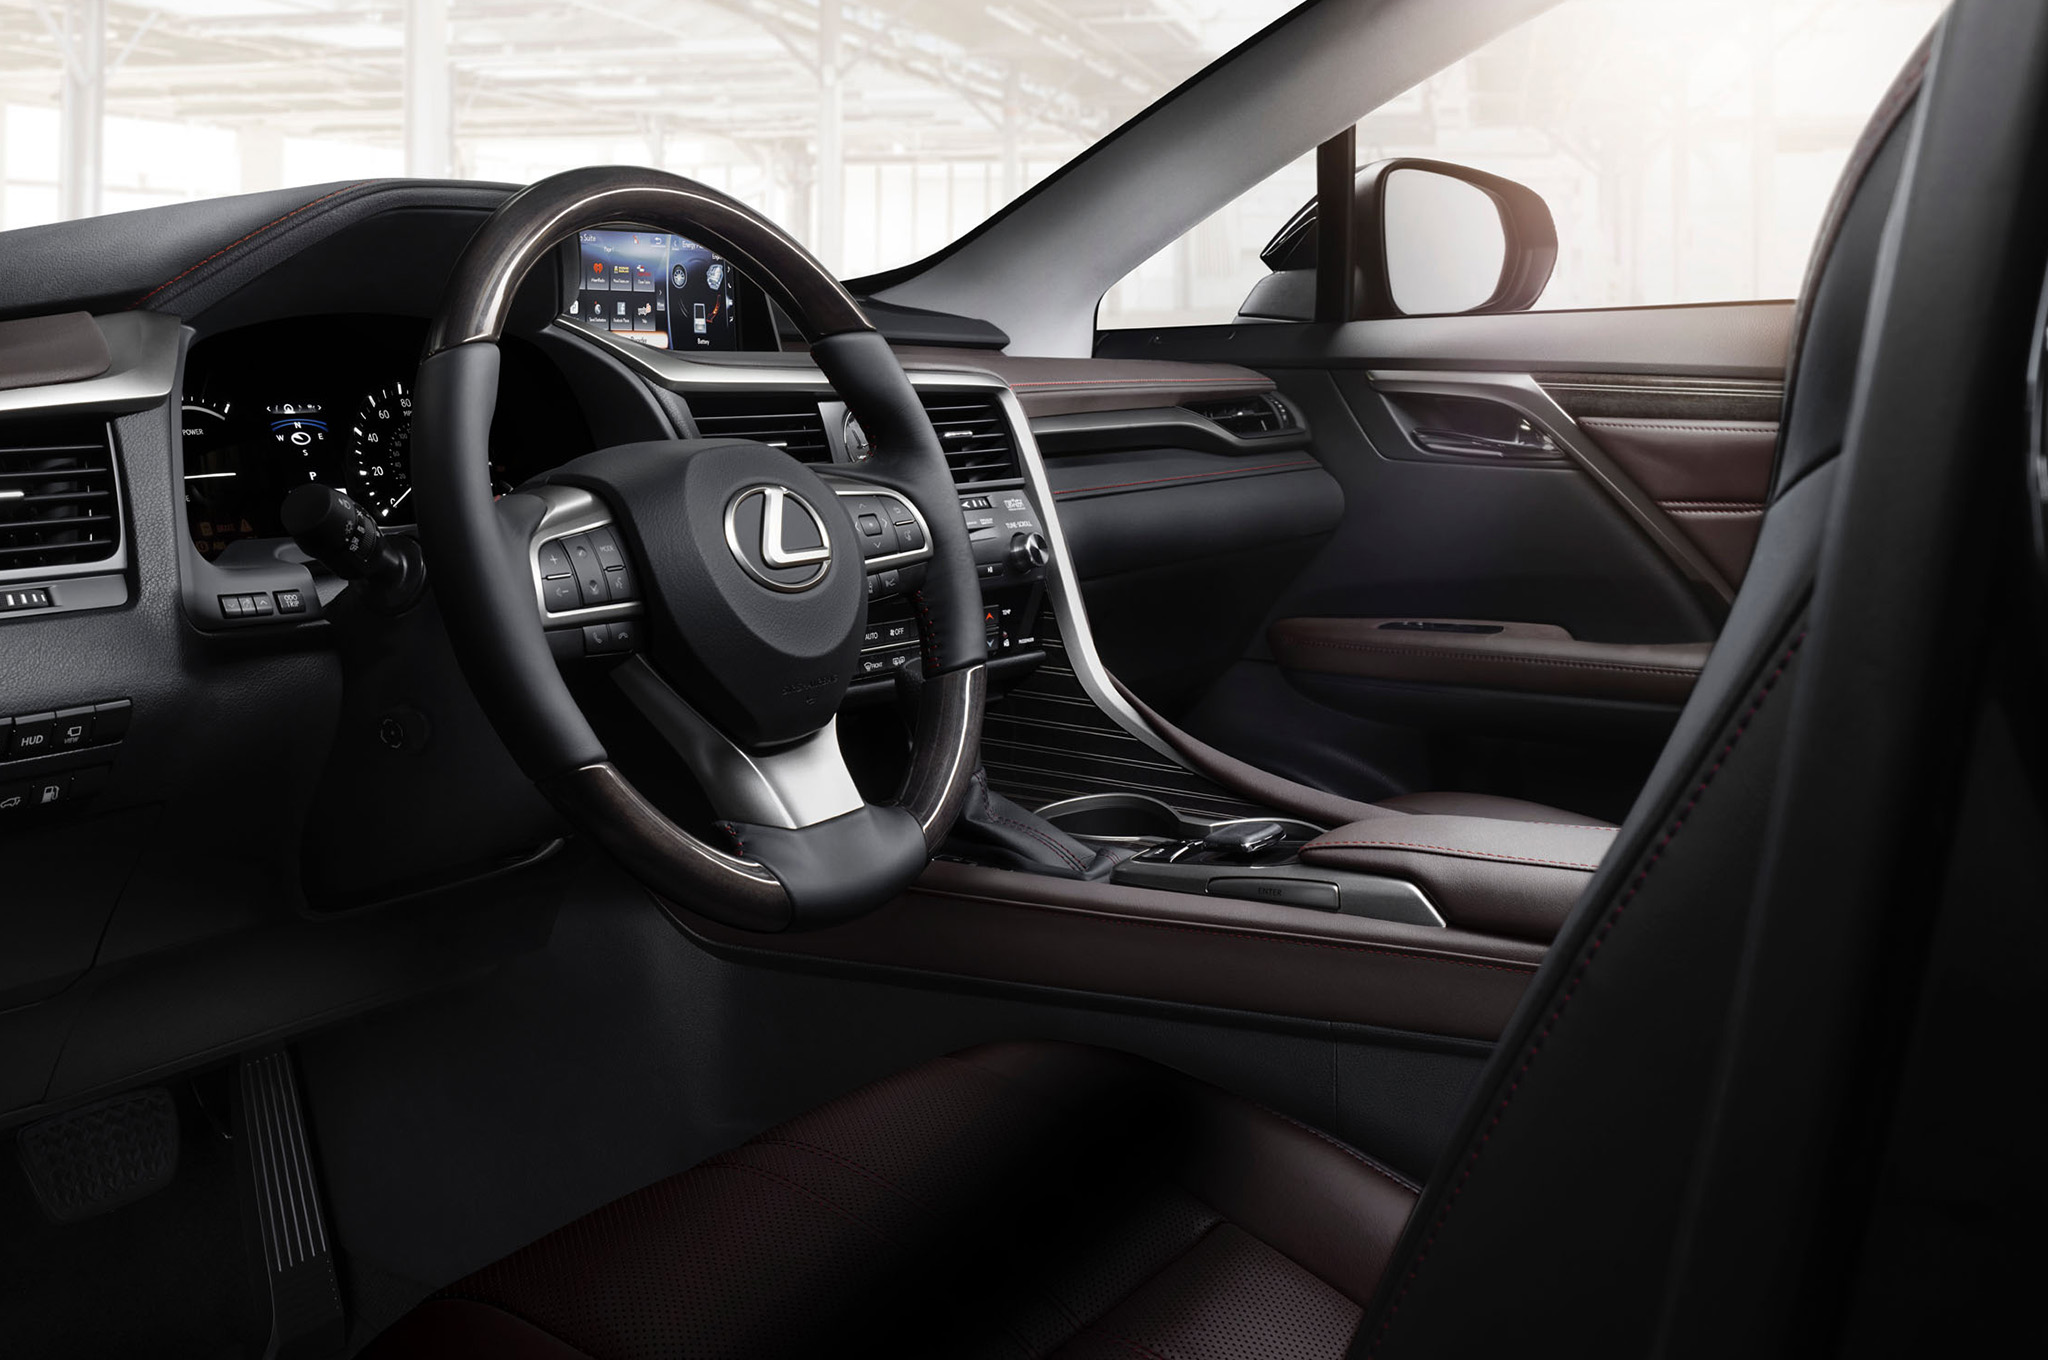 http://enthusiastnetwork.s3.amazonaws.com/uploads/sites/5/2015/03/2016-Lexus-RX-450h-1.jpg